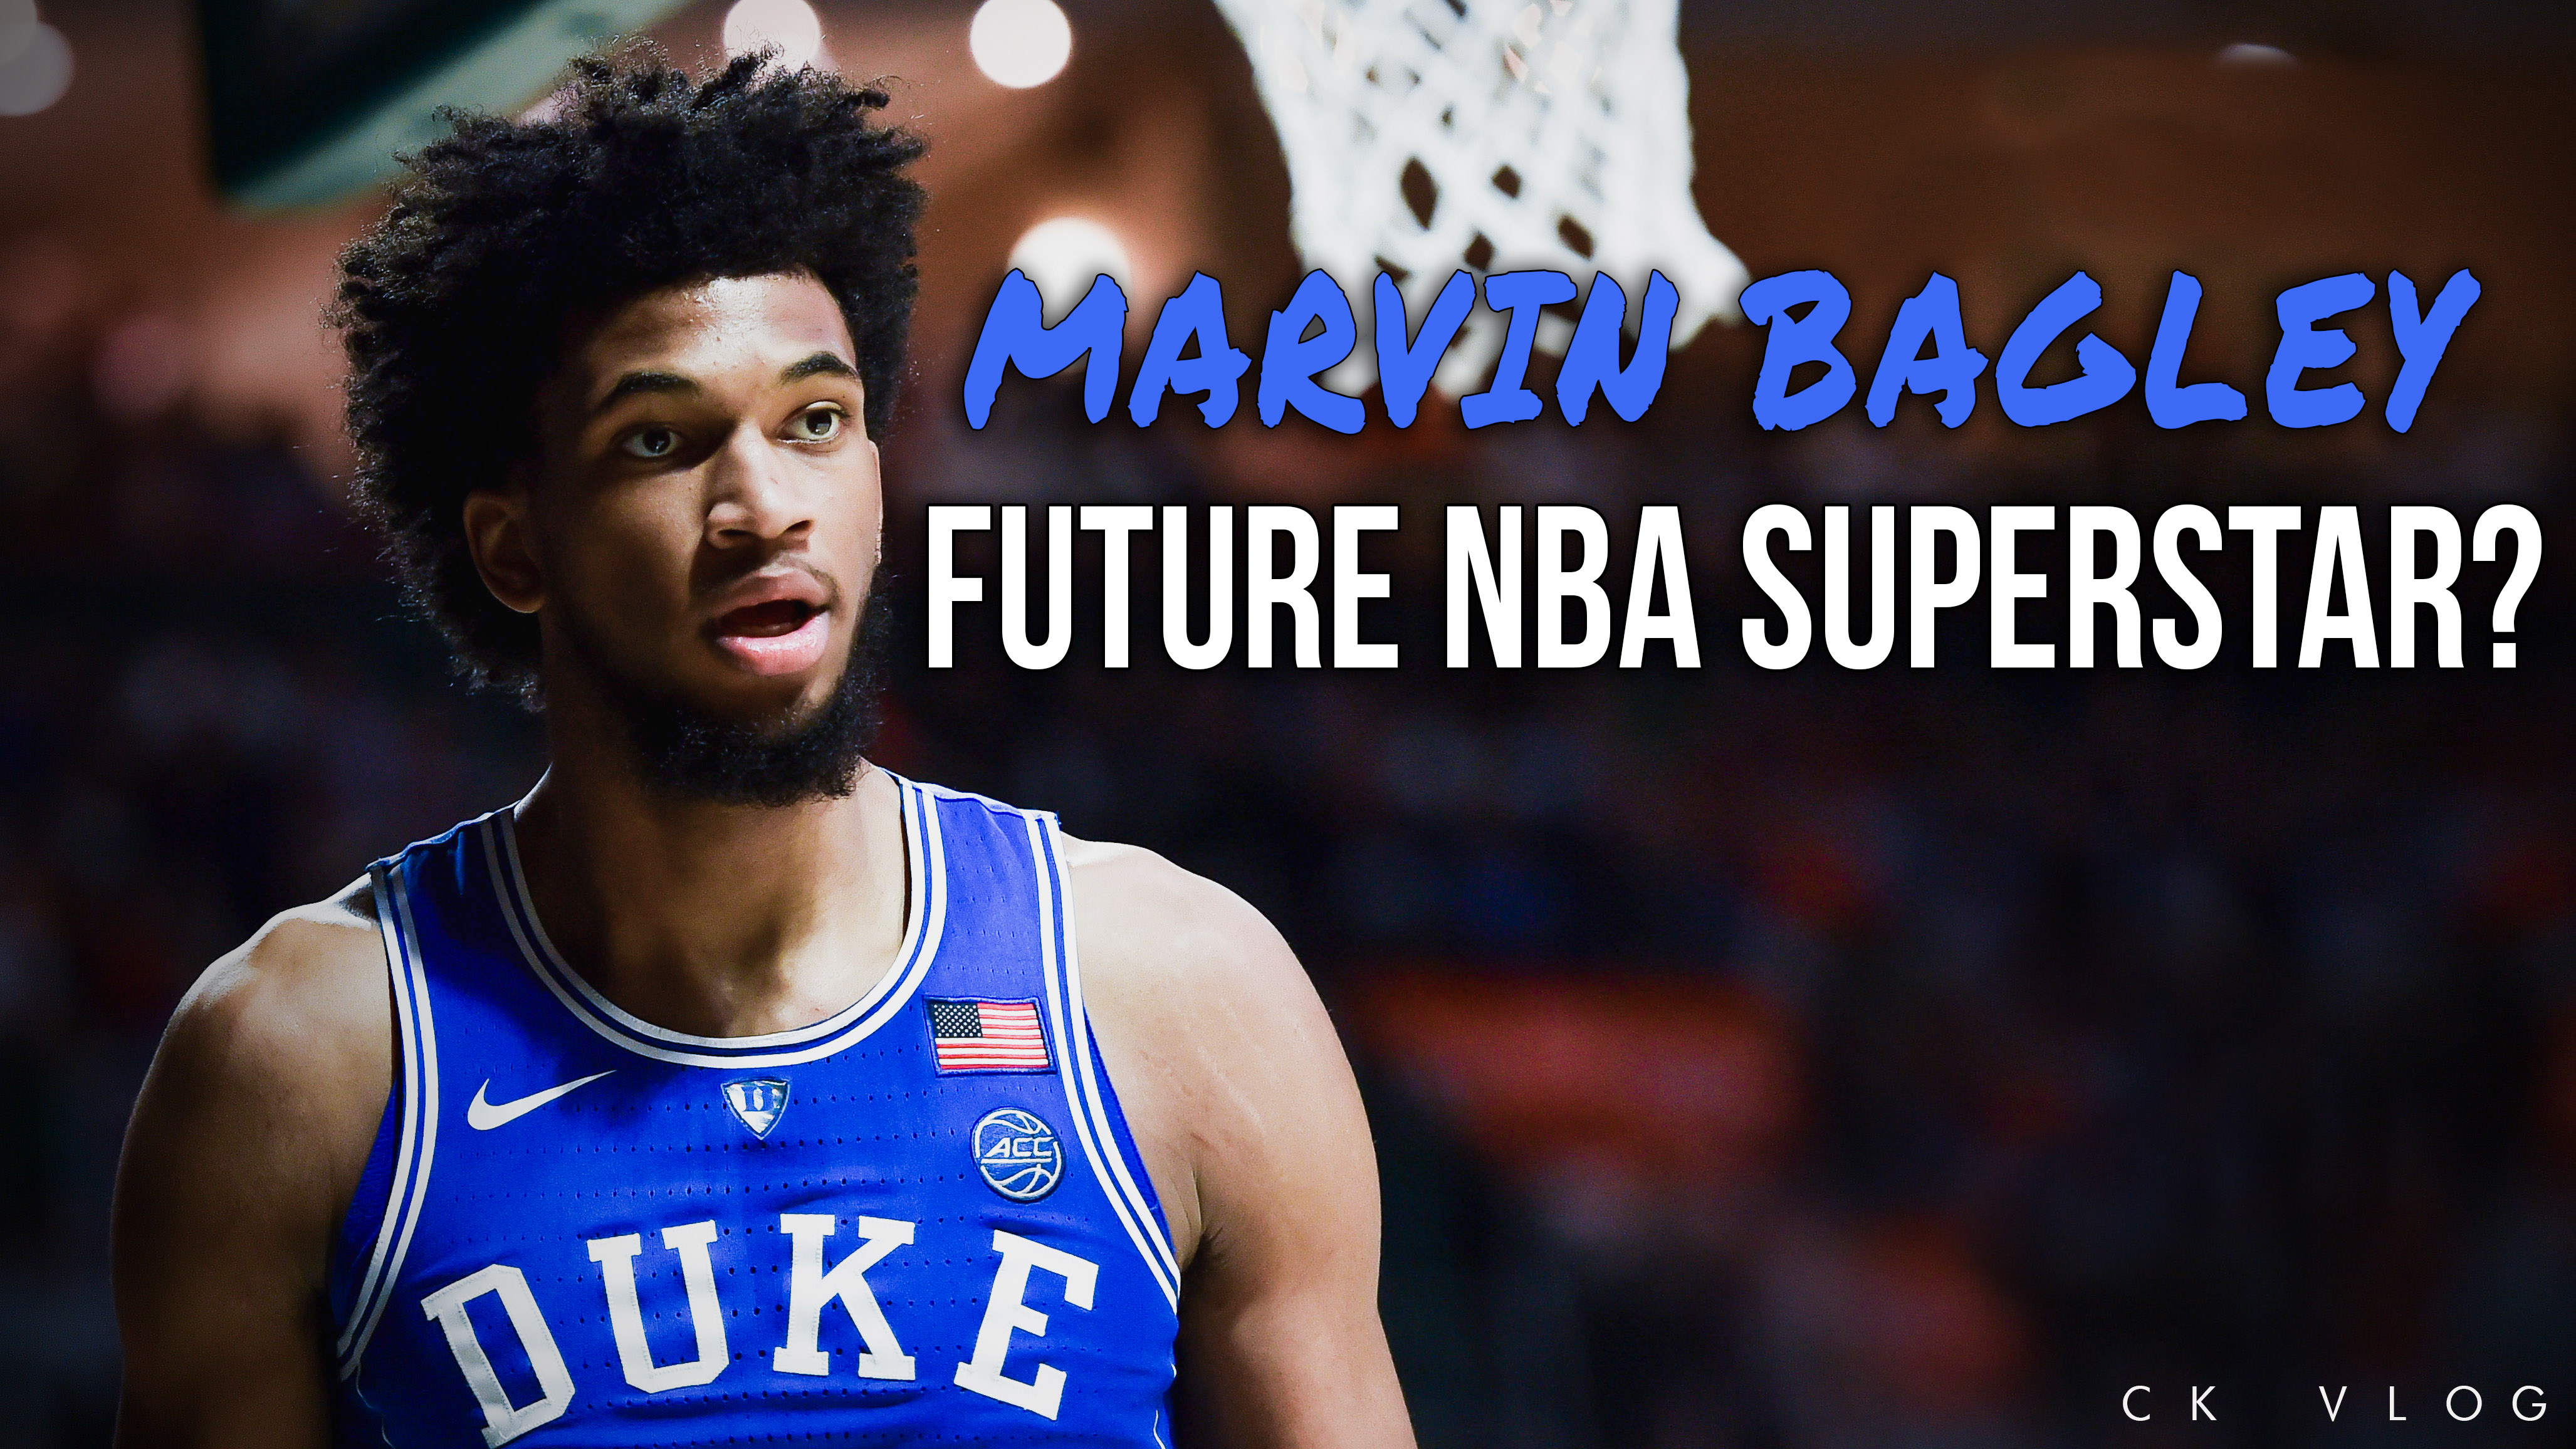 Will Marvin Bagley become a Superstar?